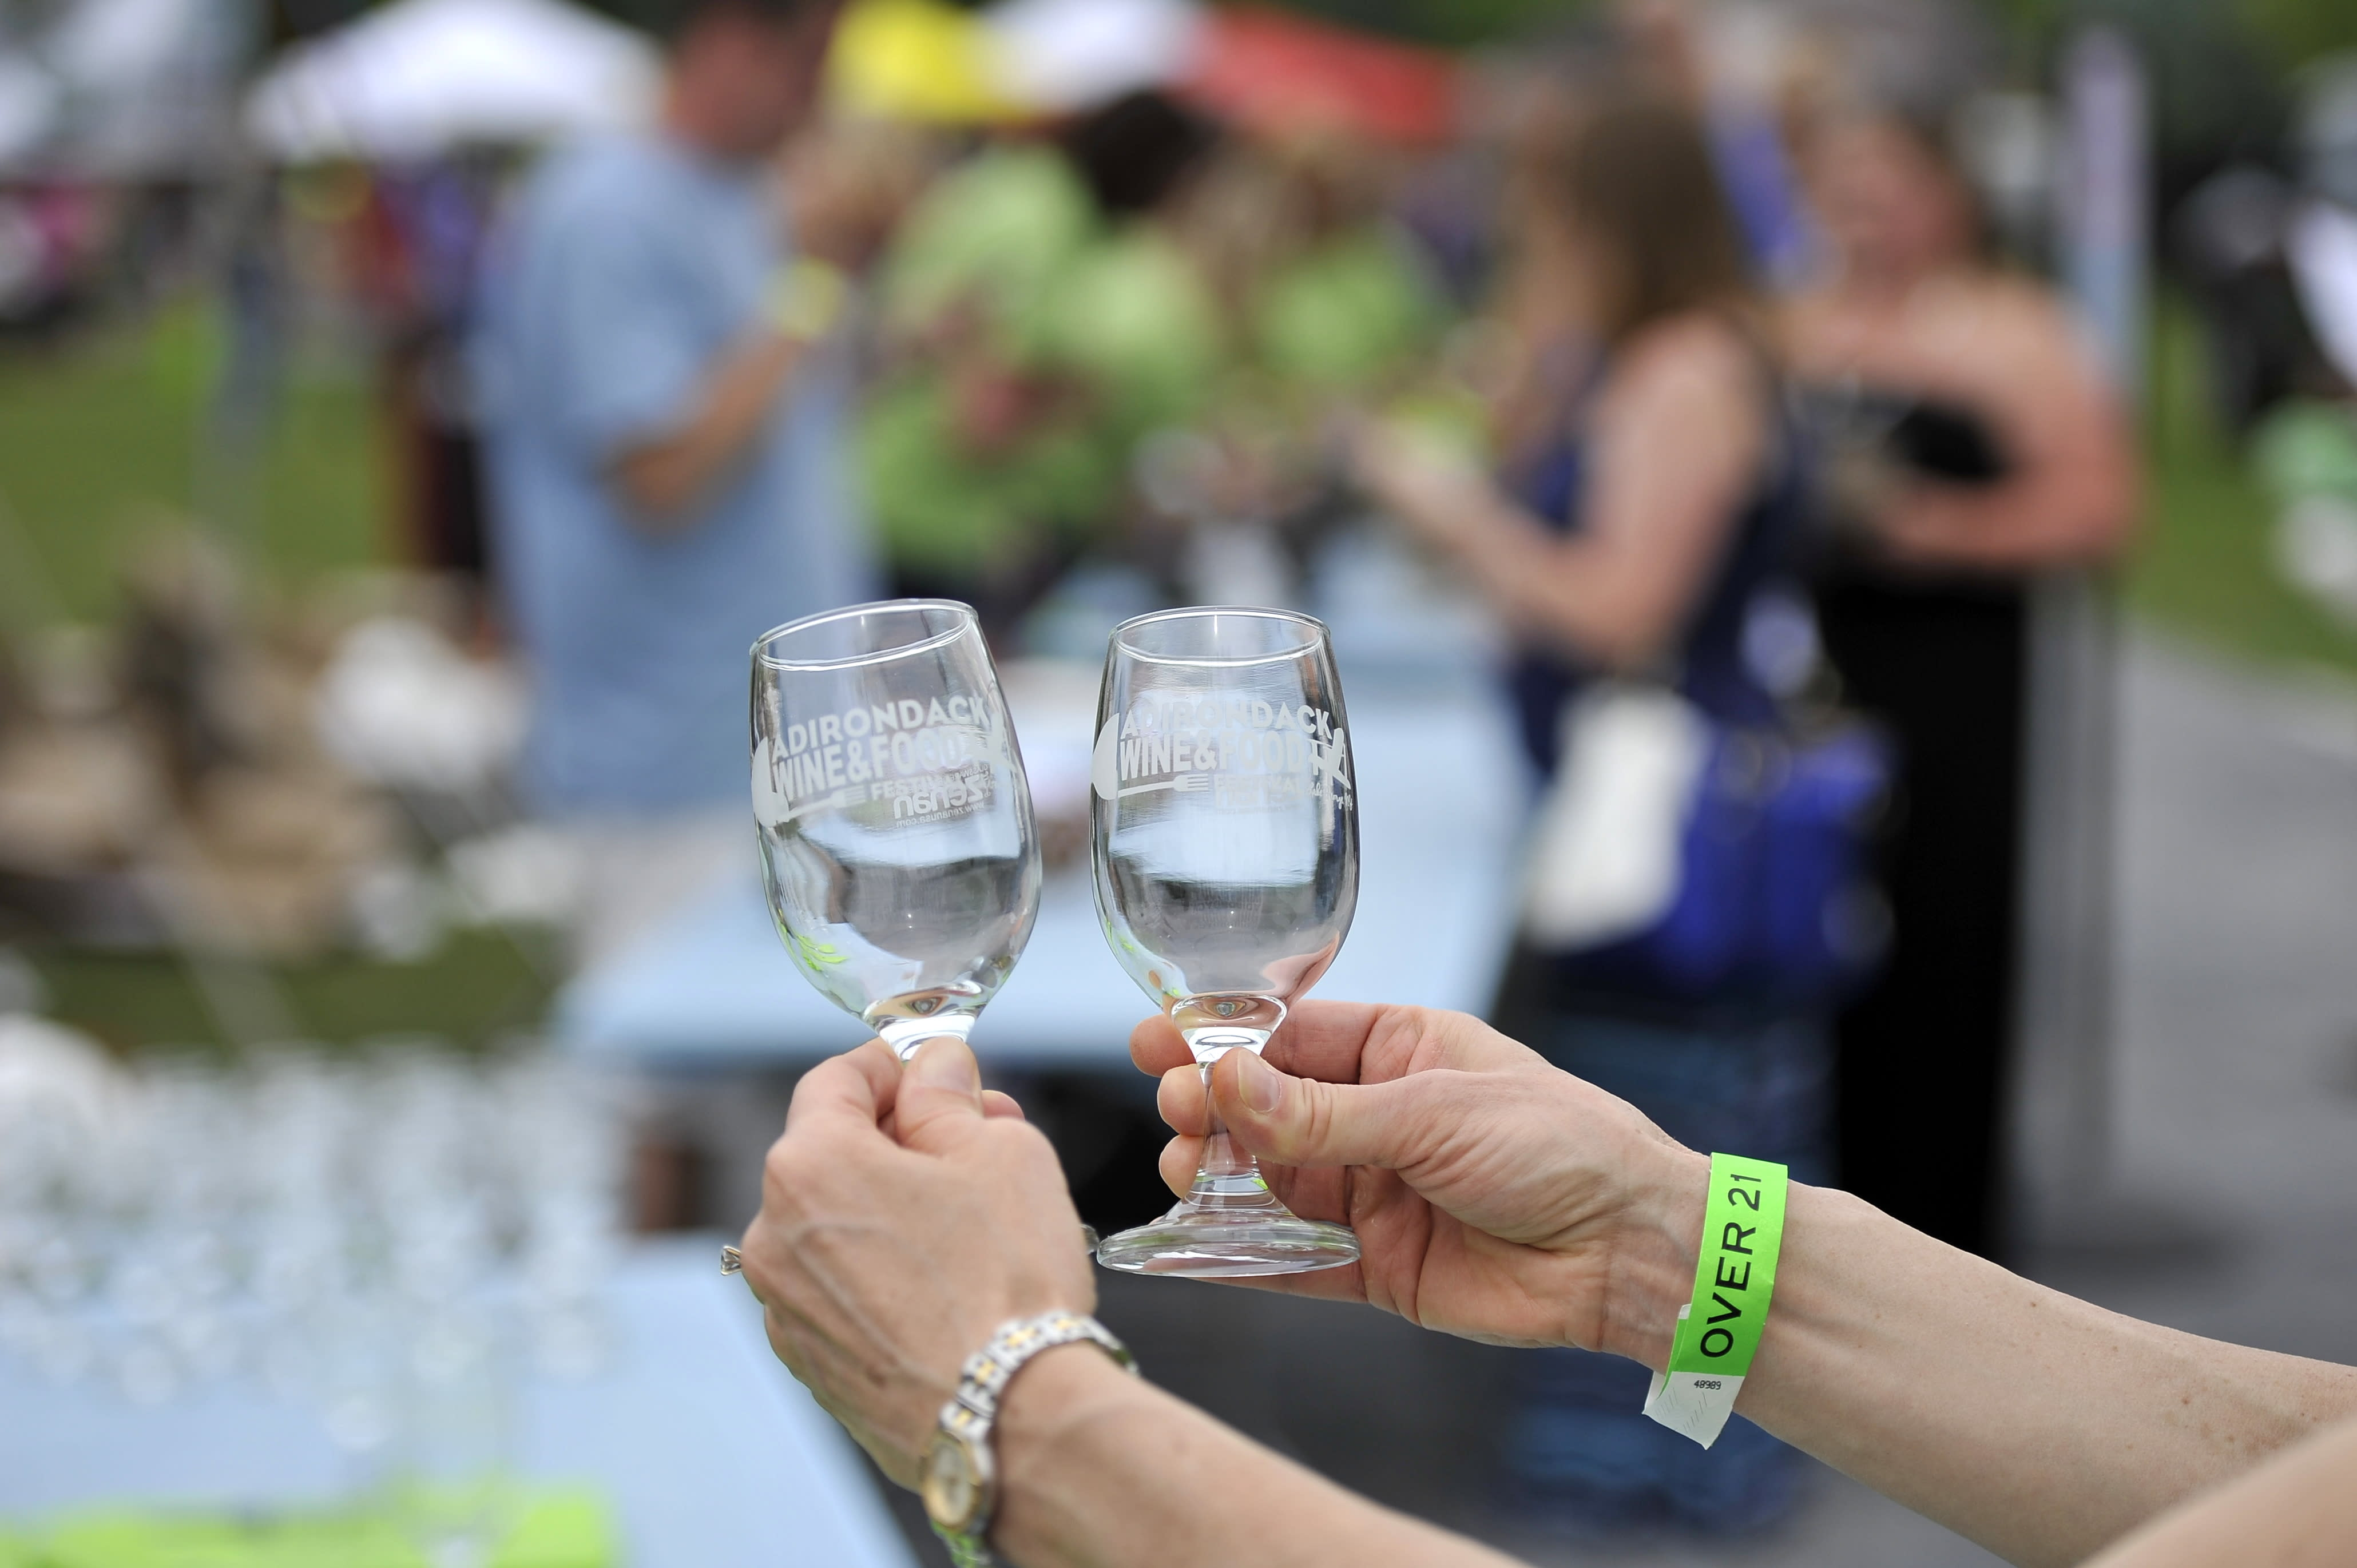 Adirondack Wine Food Festival Lake George Ny 12845